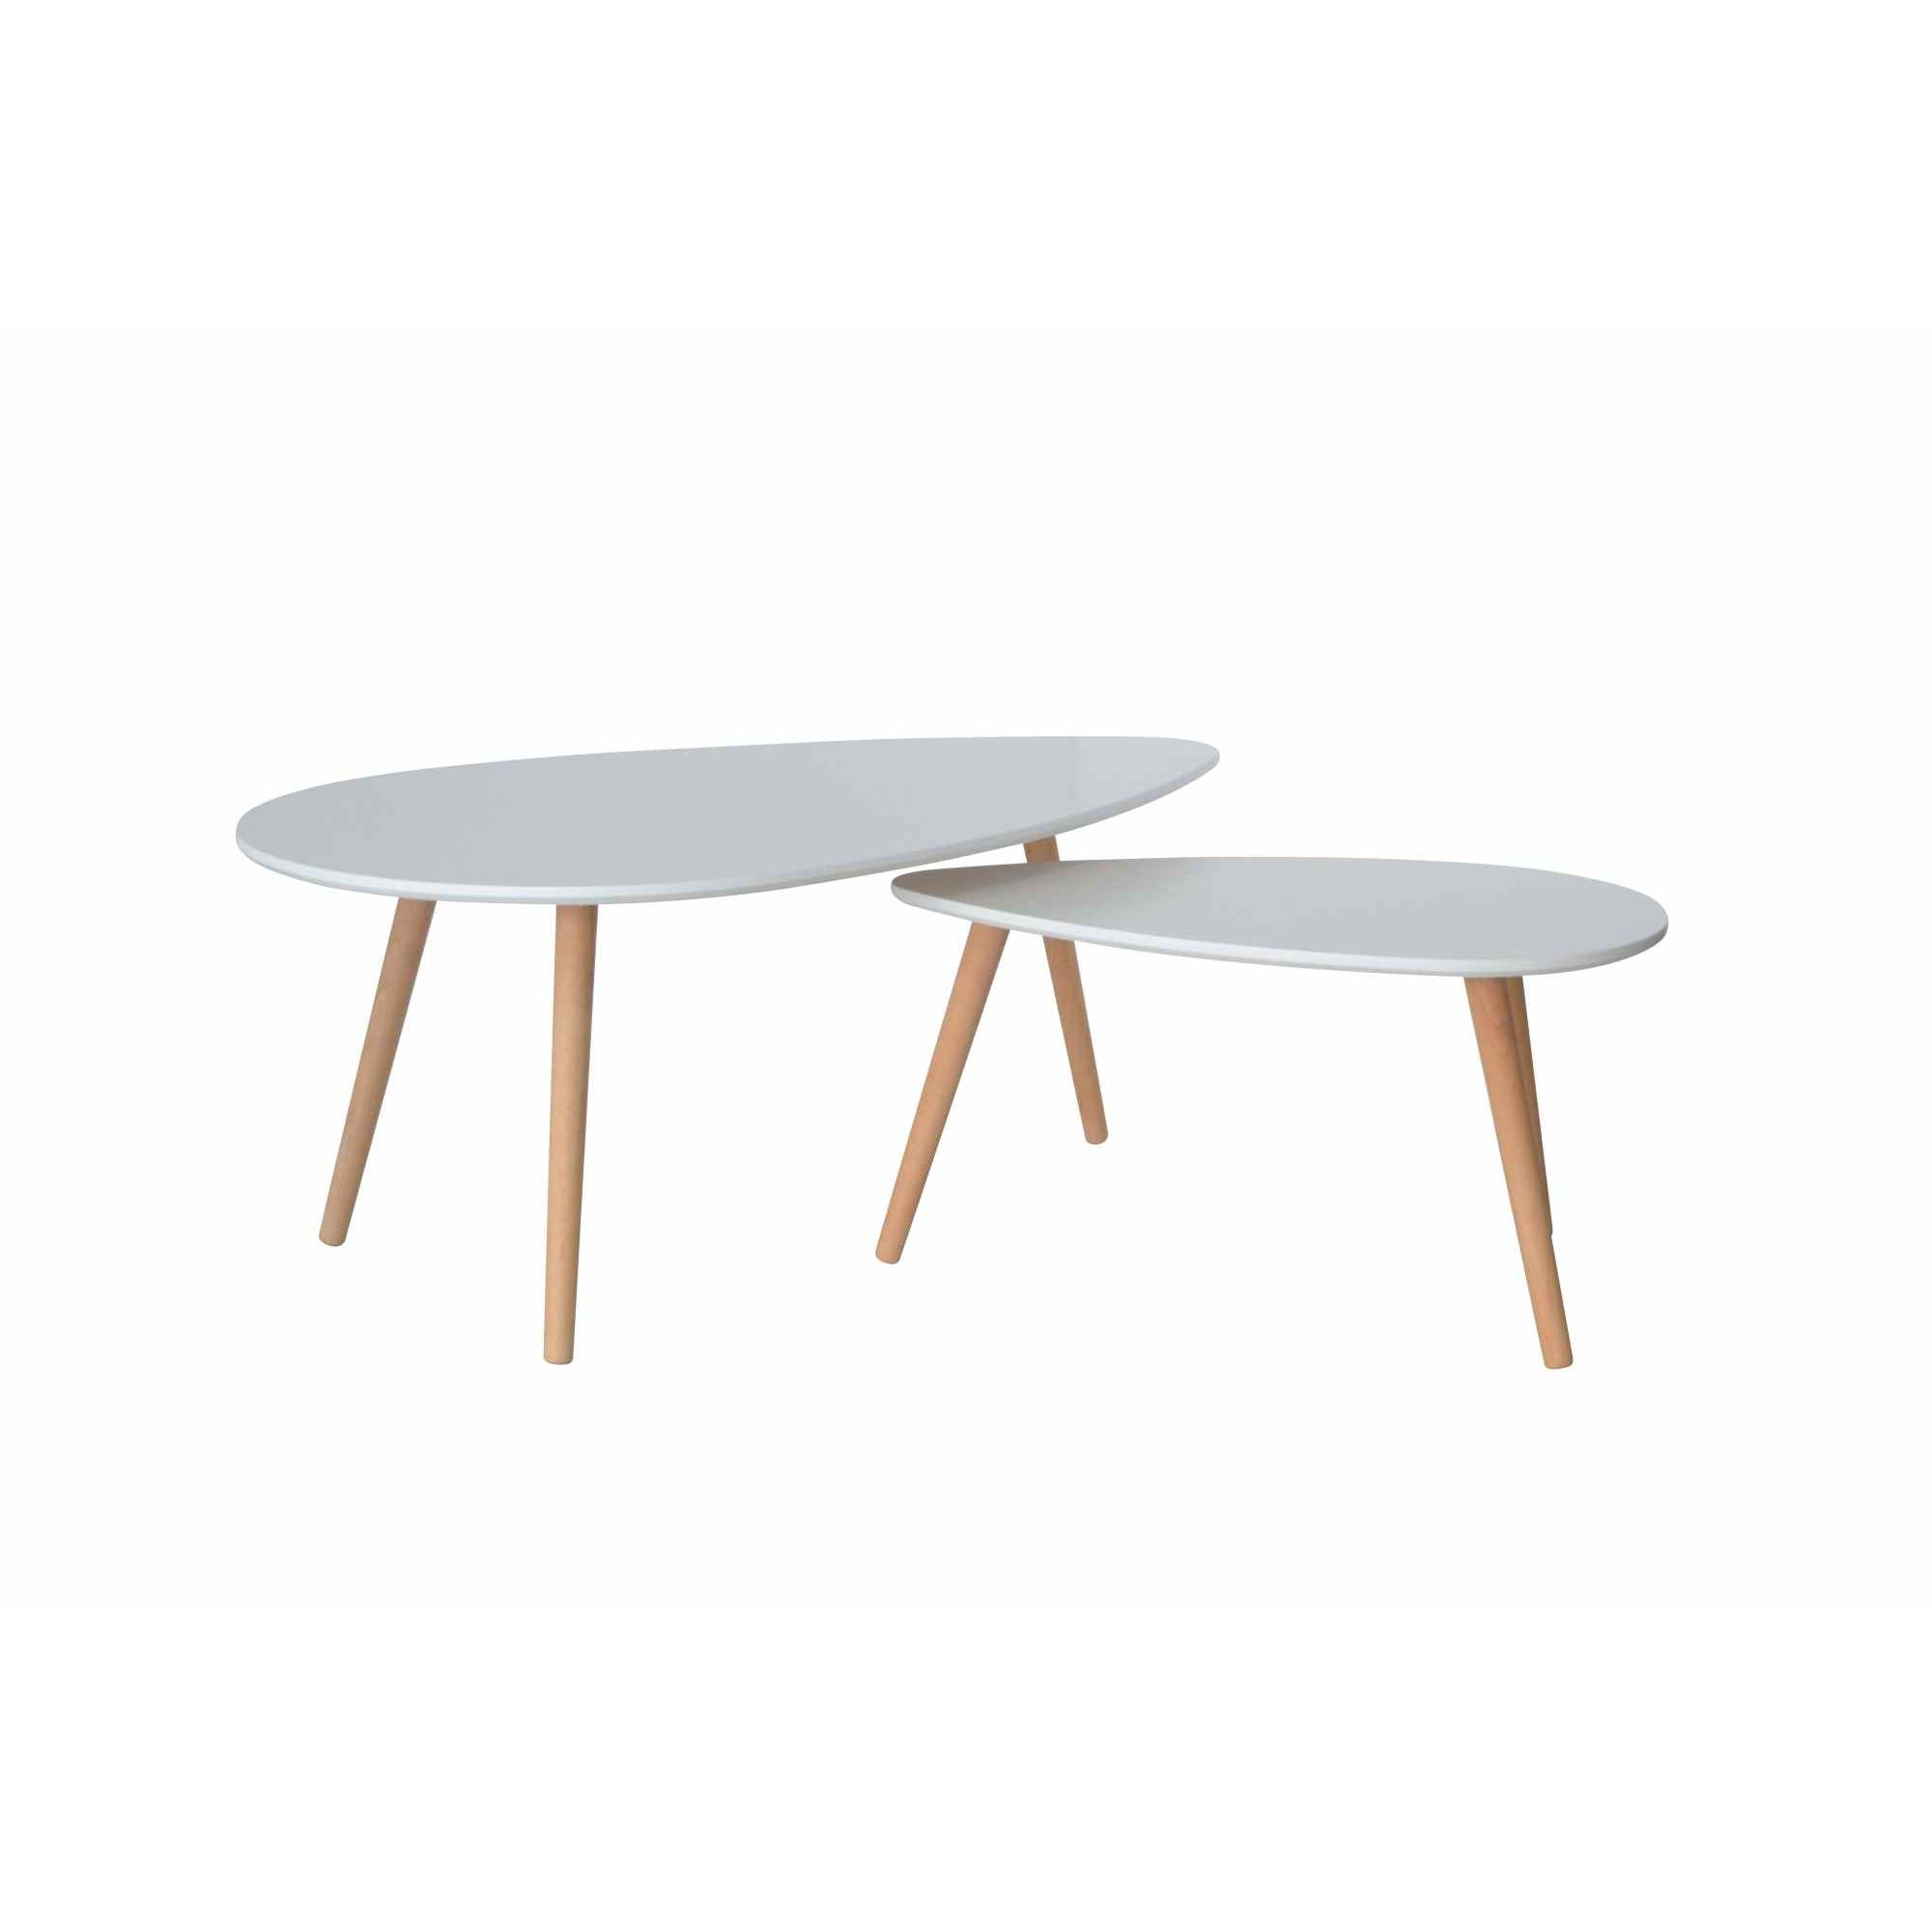 103 table basse scandinave blanche table basse bois scandinave achat vente table basse table. Black Bedroom Furniture Sets. Home Design Ideas